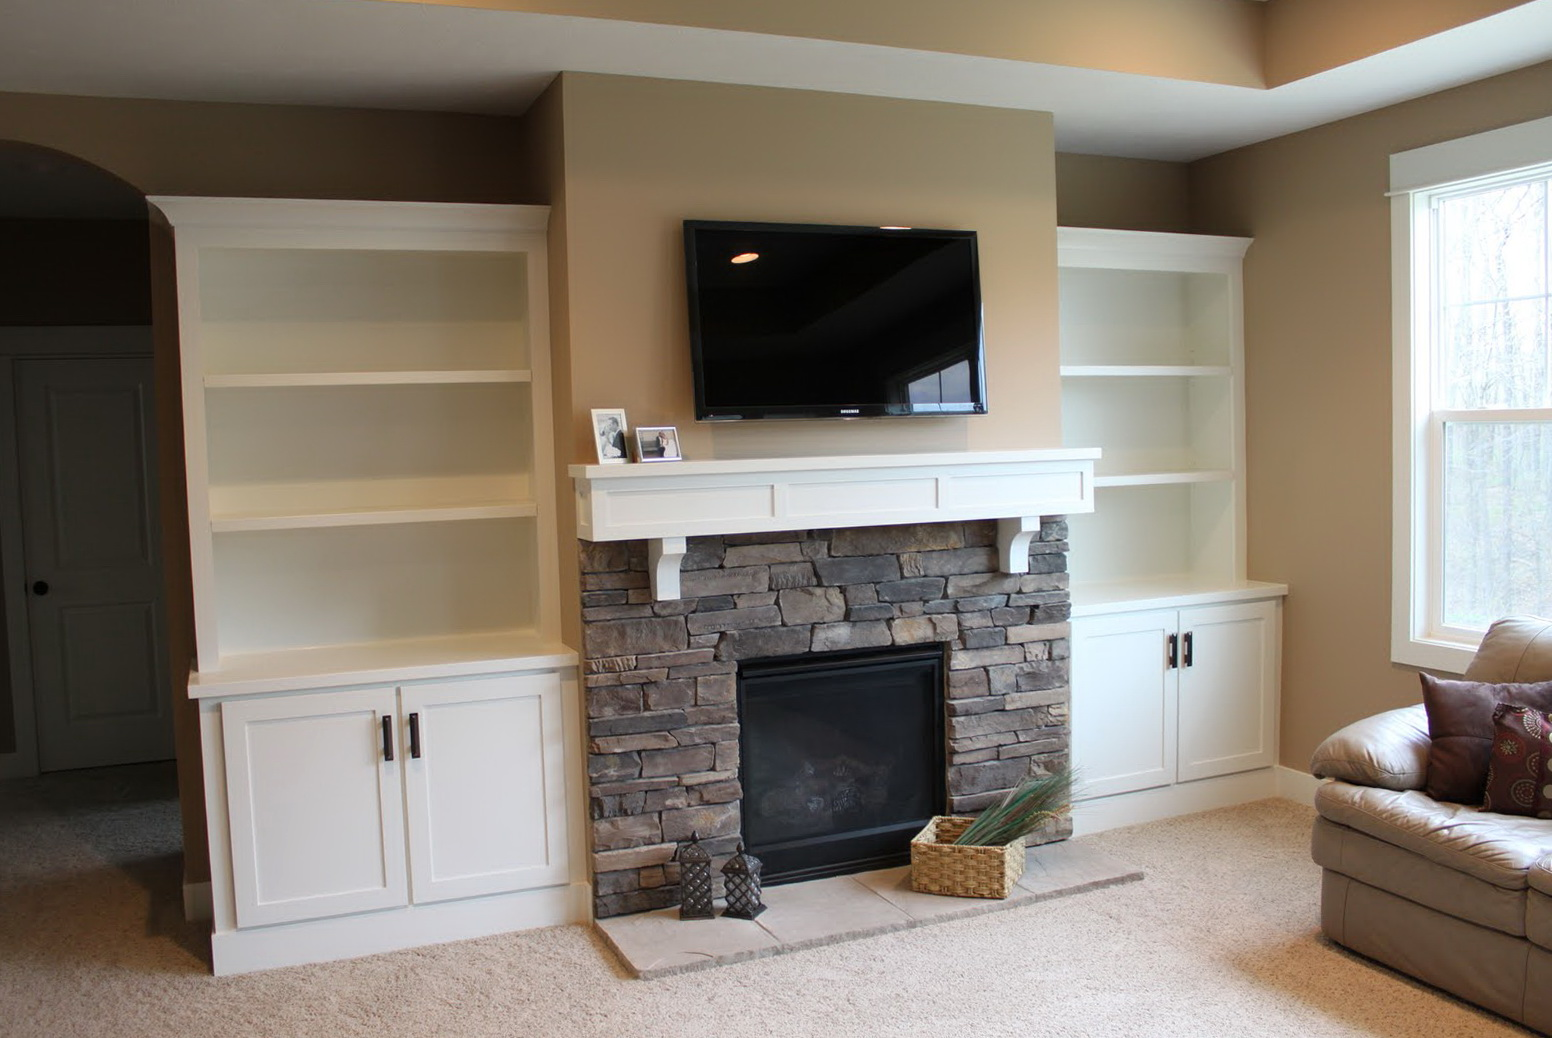 Soulful Wood Storage Fireplace Built Ins Diy Fireplace Built Ins Diy Home Design Ideas Fireplace Built Ins Plans Fireplace Built Ins houzz-02 Fireplace Built Ins